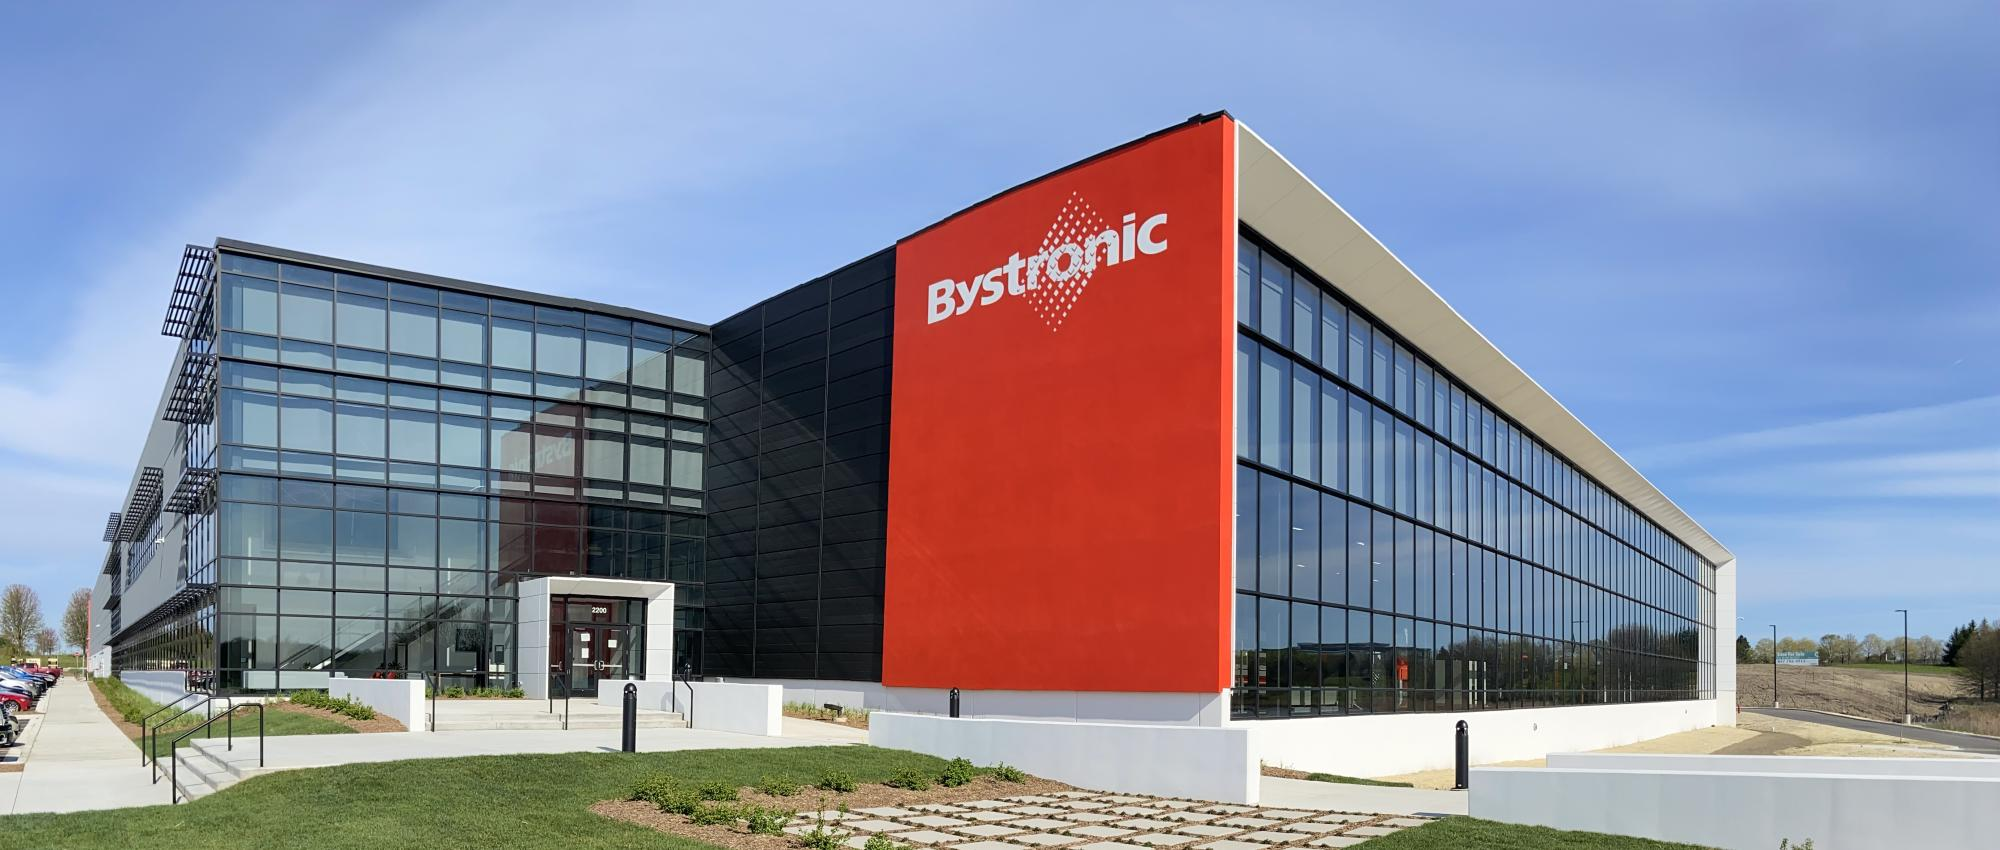 Bystronic building in Hoffman Estates with red entry